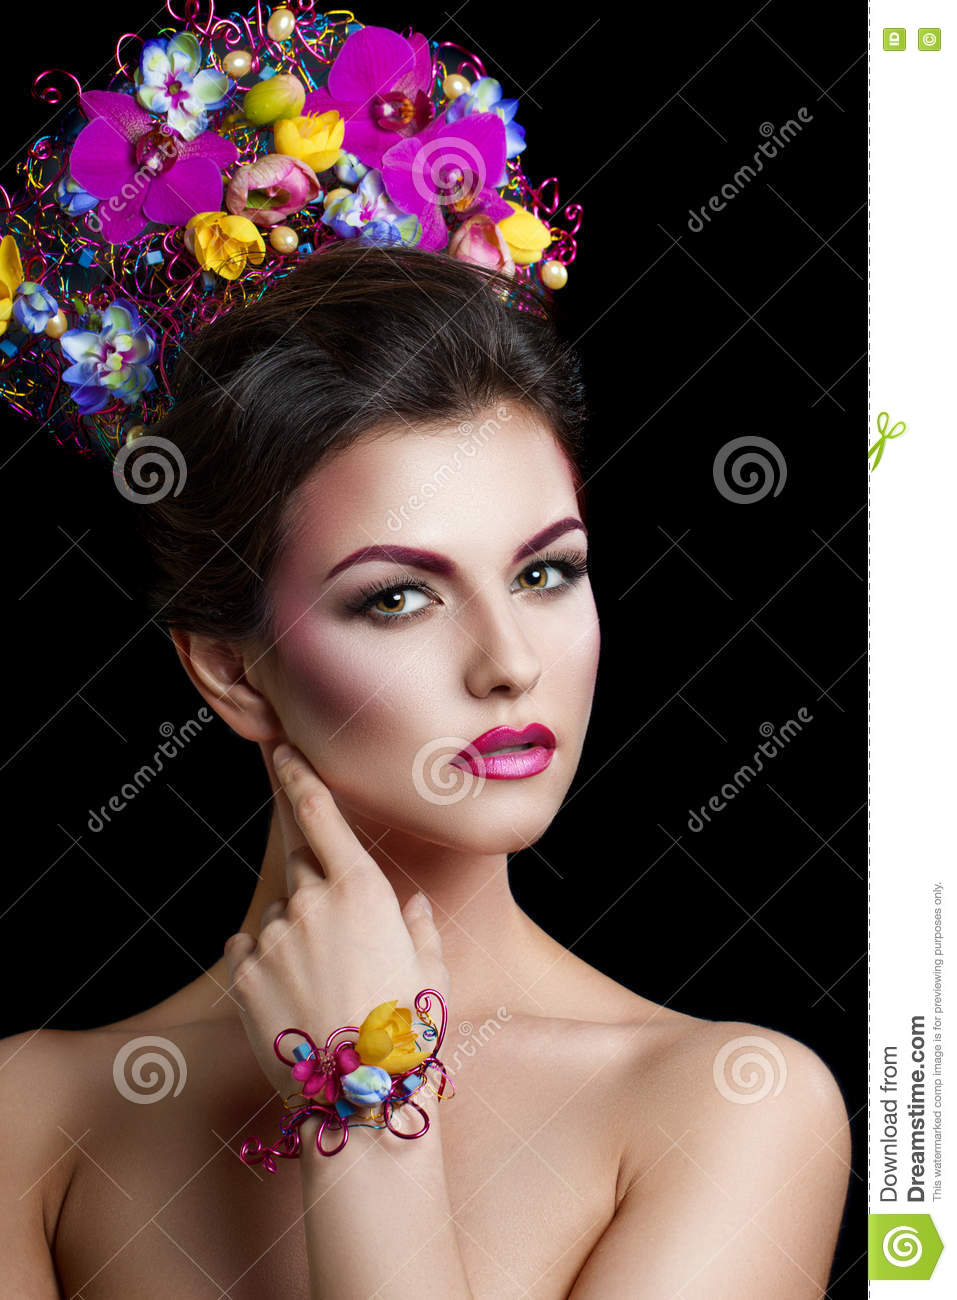 Fashion beauty woman with flowers in her hair and around her neck fashion beauty woman with flowers in her hair and around her neck perfect creative make up and hair style hairstyle bouquet of beautiful flowers izmirmasajfo